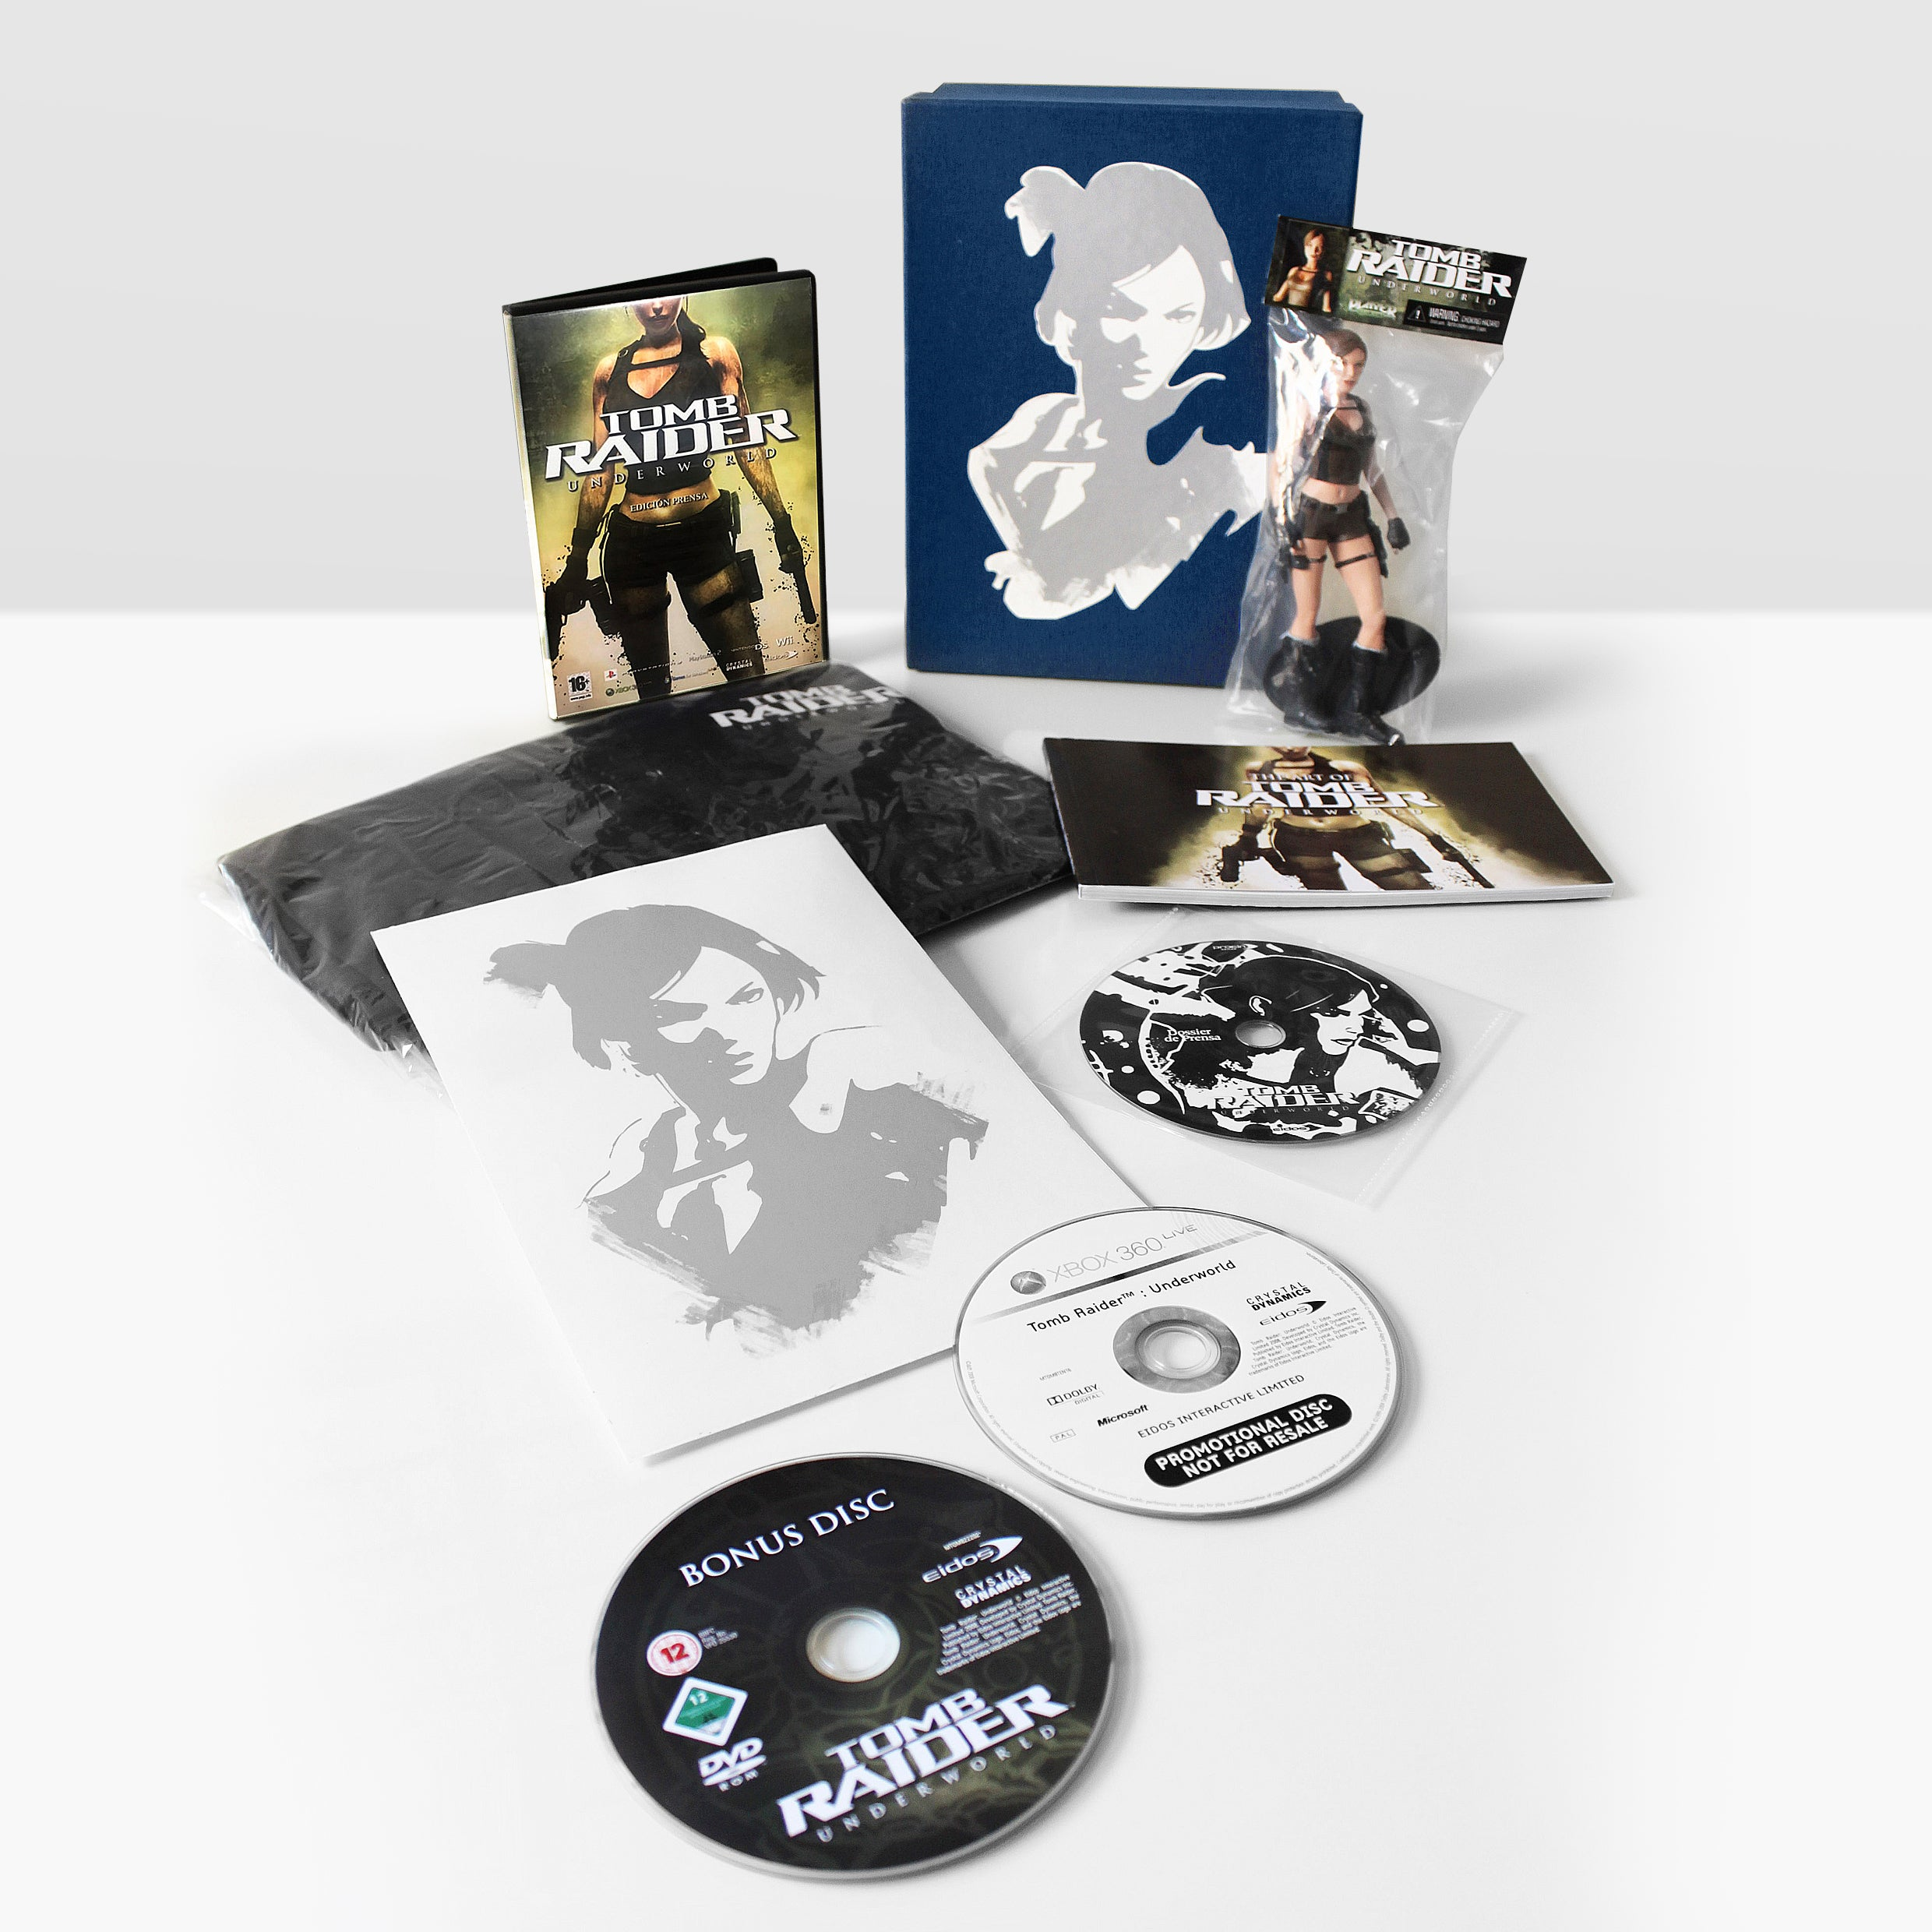 The official Tomb Raider: Undeworld press pack